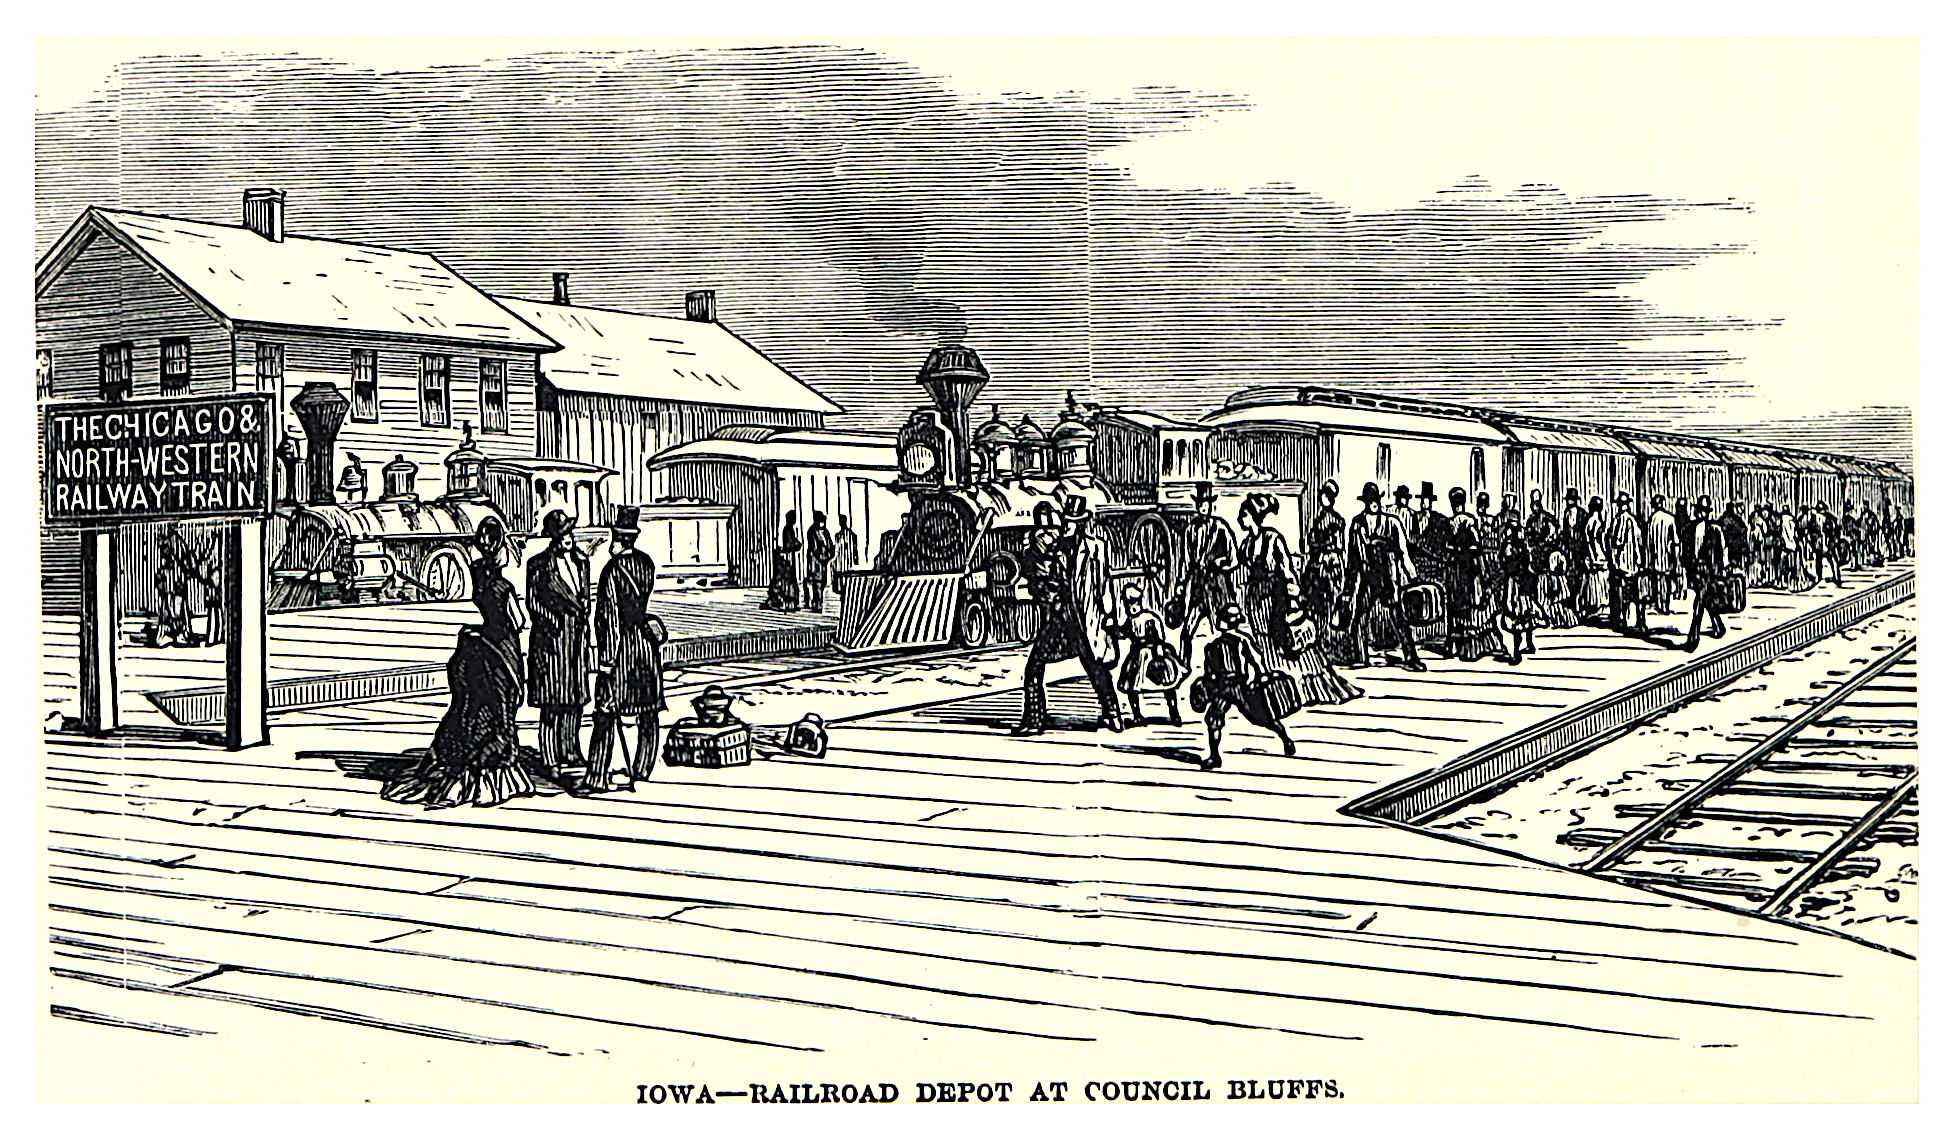 Railroad Depot at Council Bluffs, Iowa, 1882